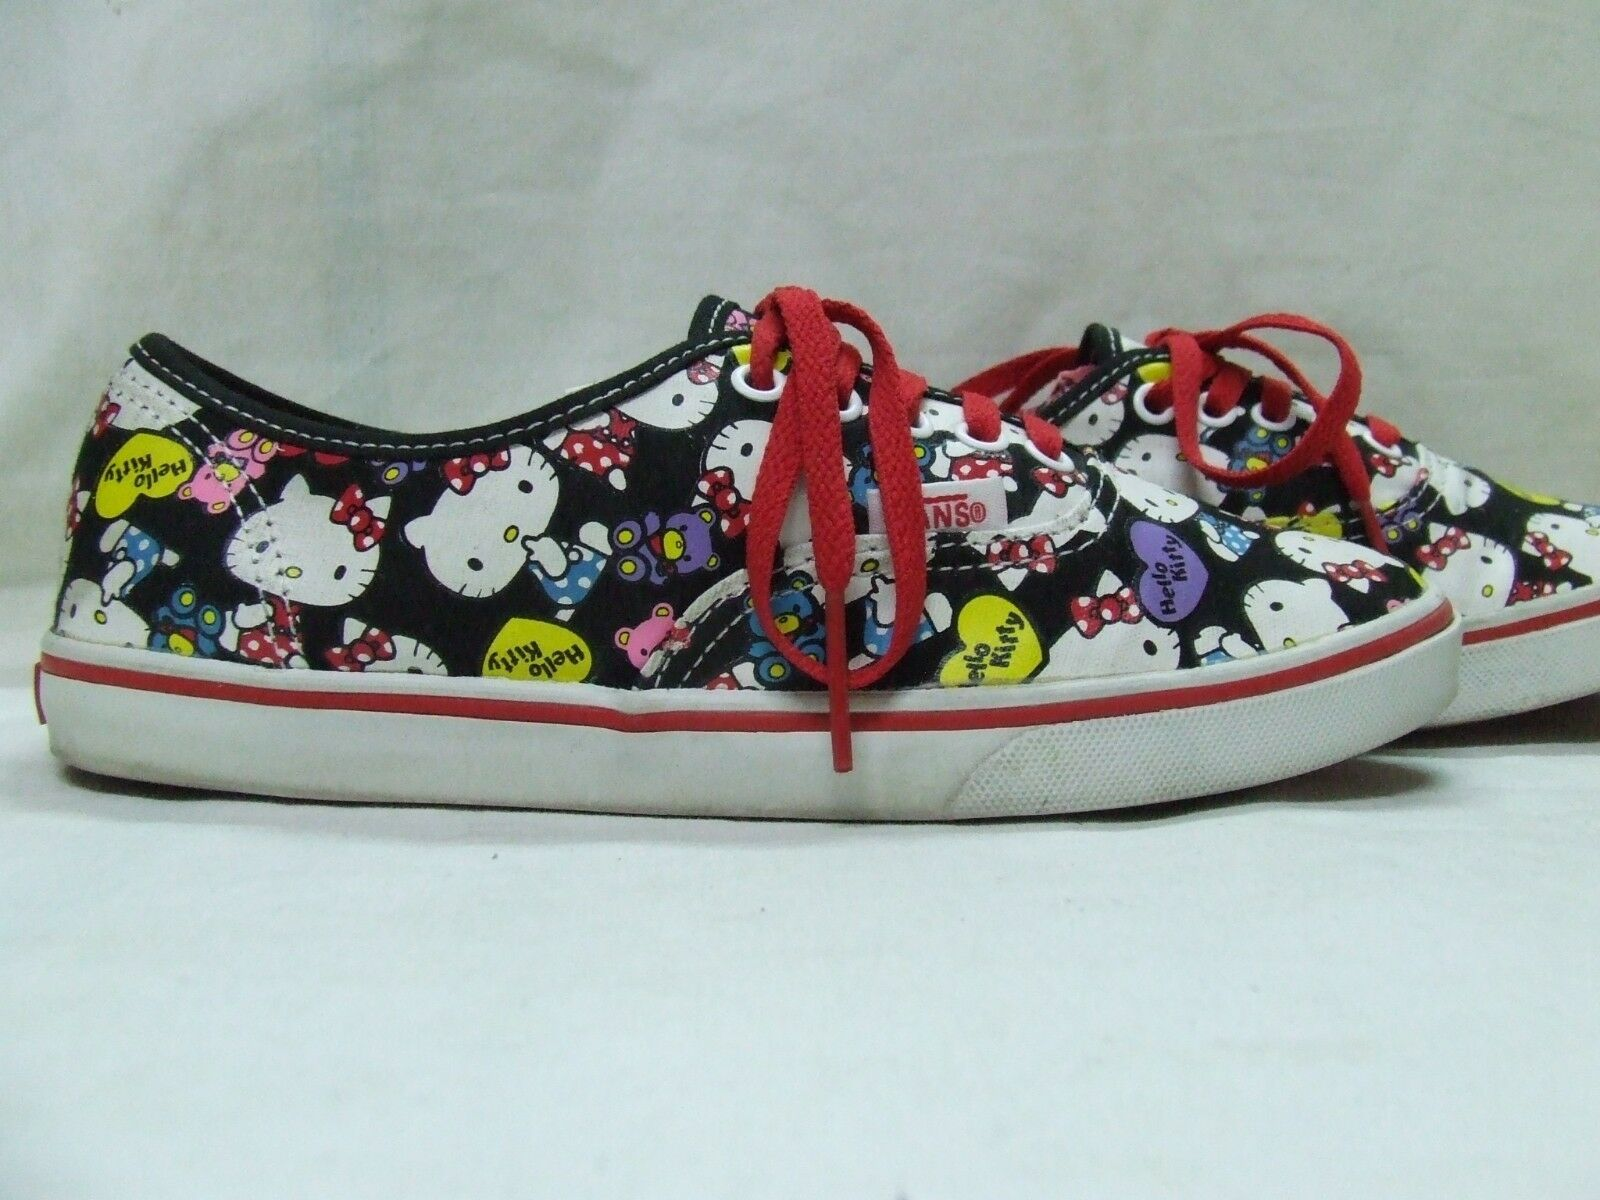 SHOES WOMAN VINTAGE VANS HELLO KITTY size 4 - 35 (013)